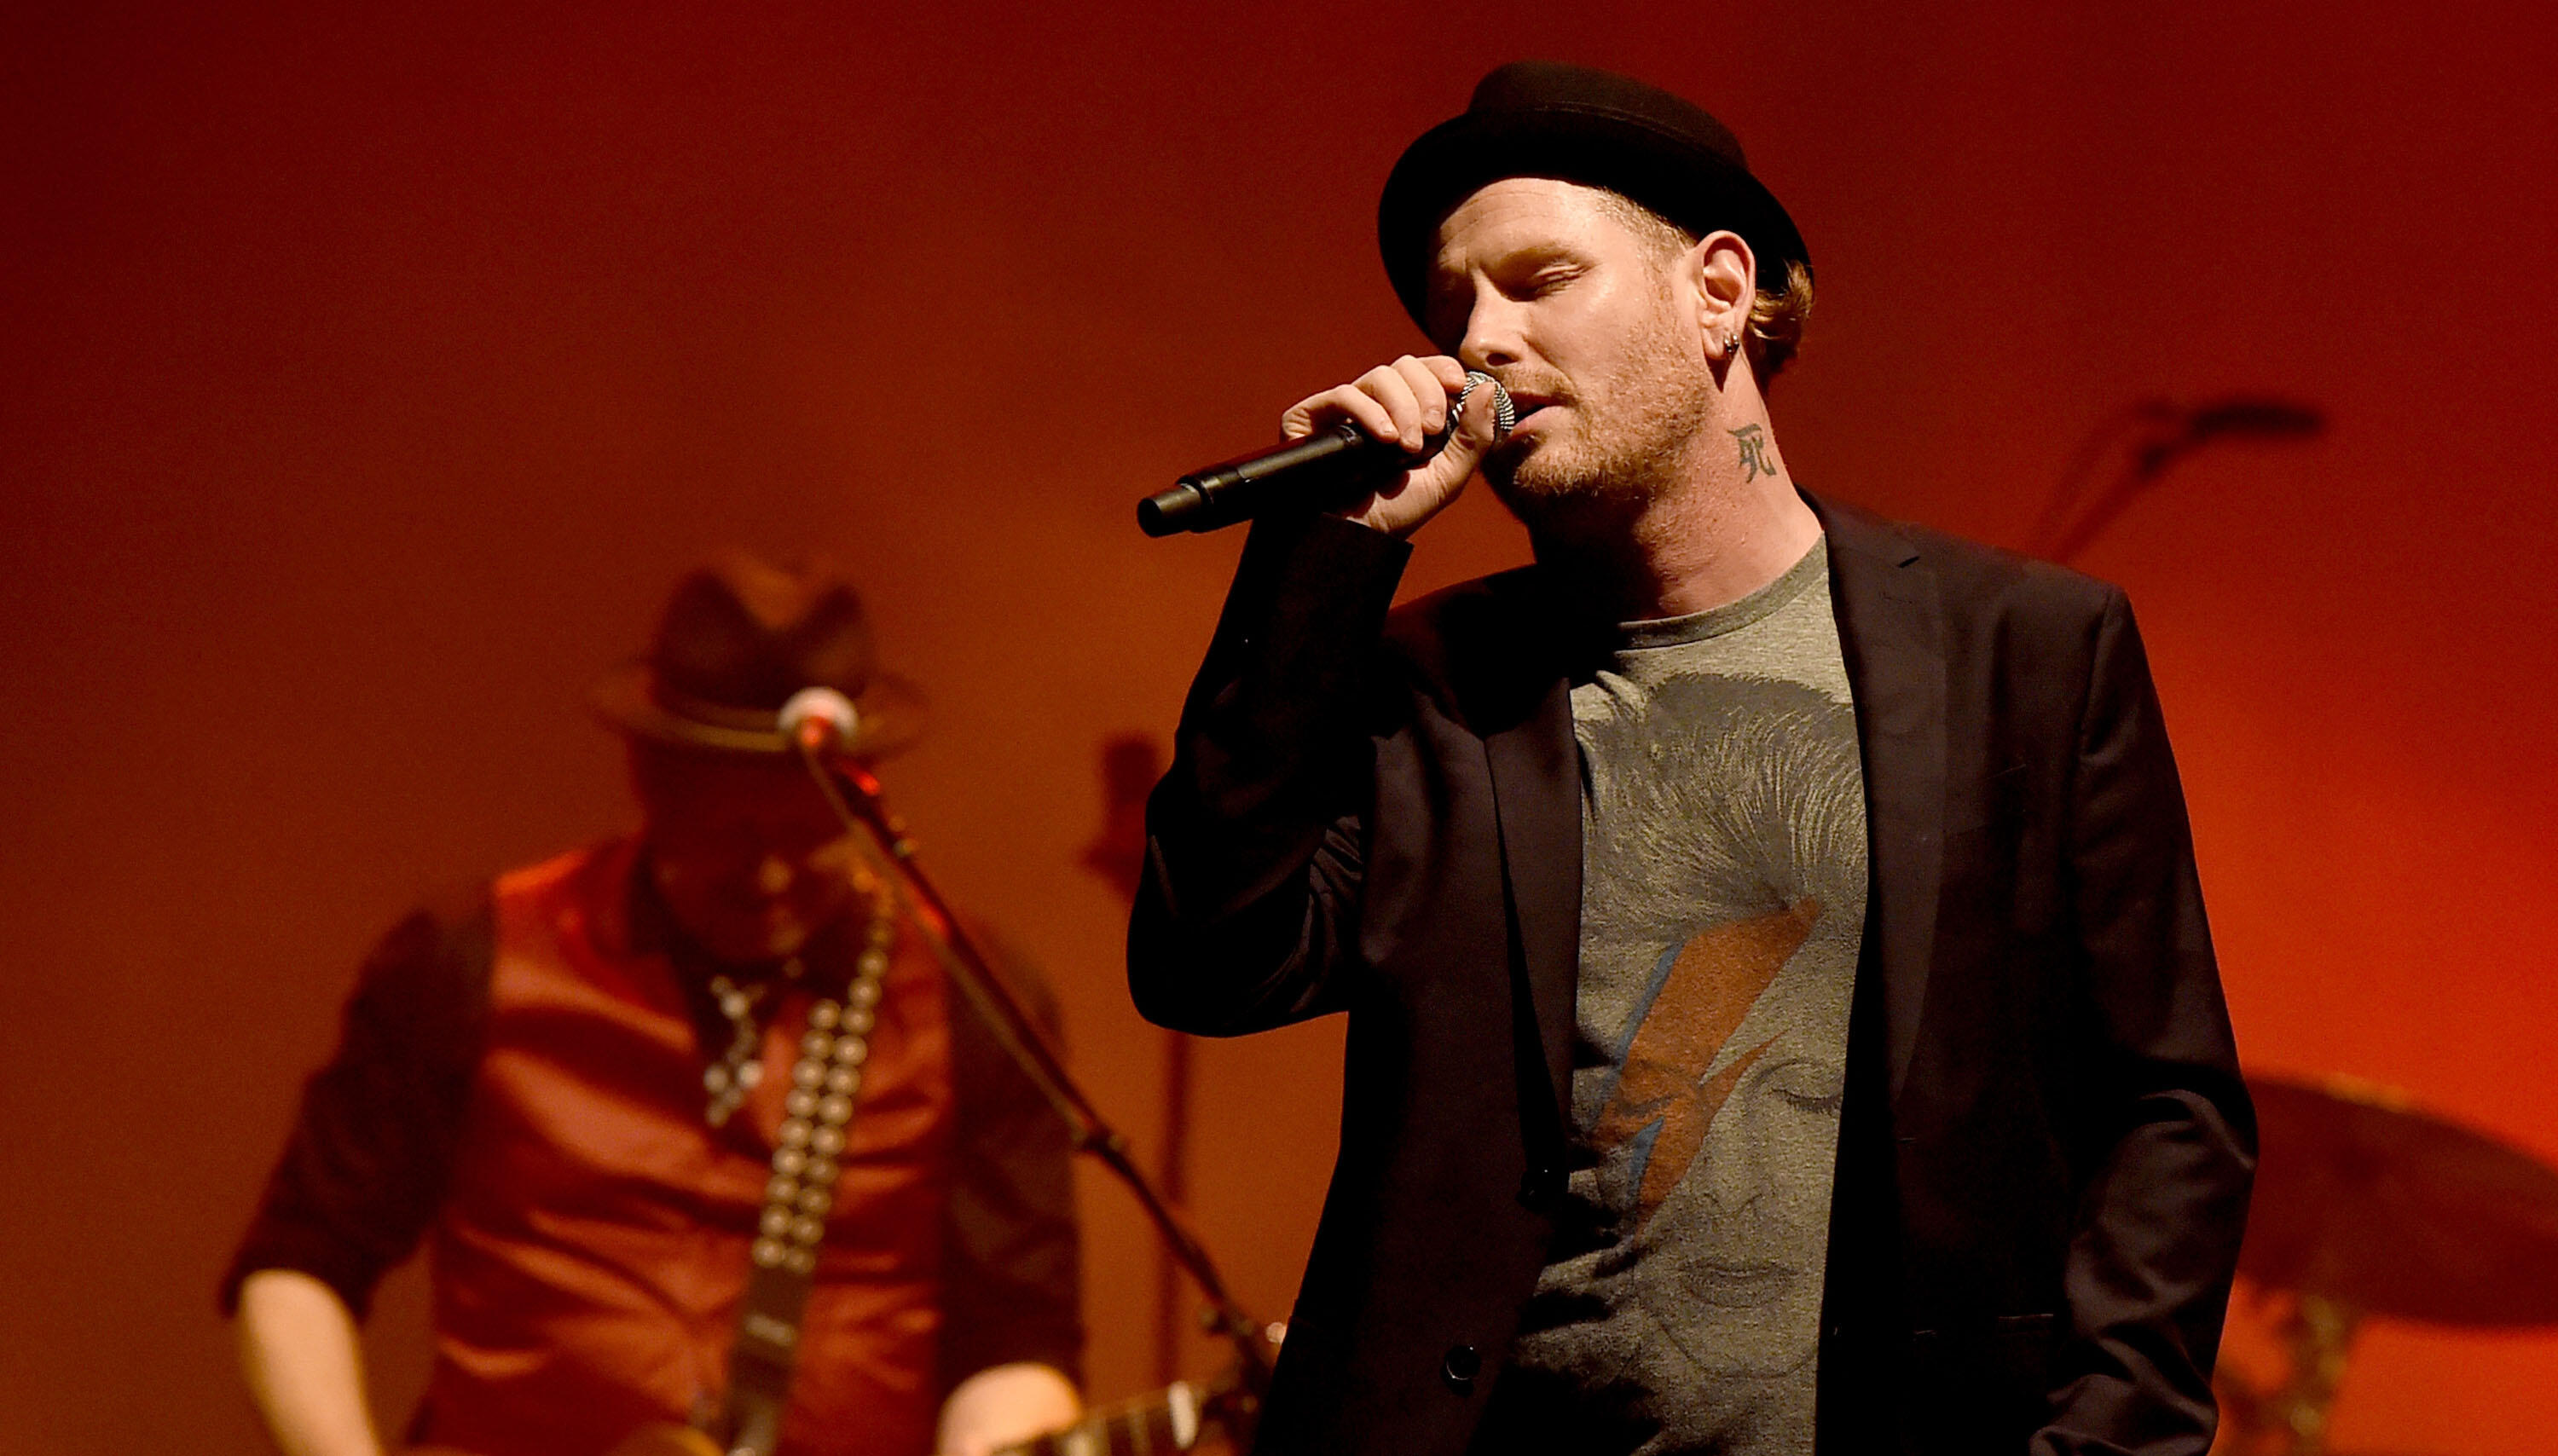 Corey Taylor Is Planning Socially-Distanced Live Solo Tour This Spring